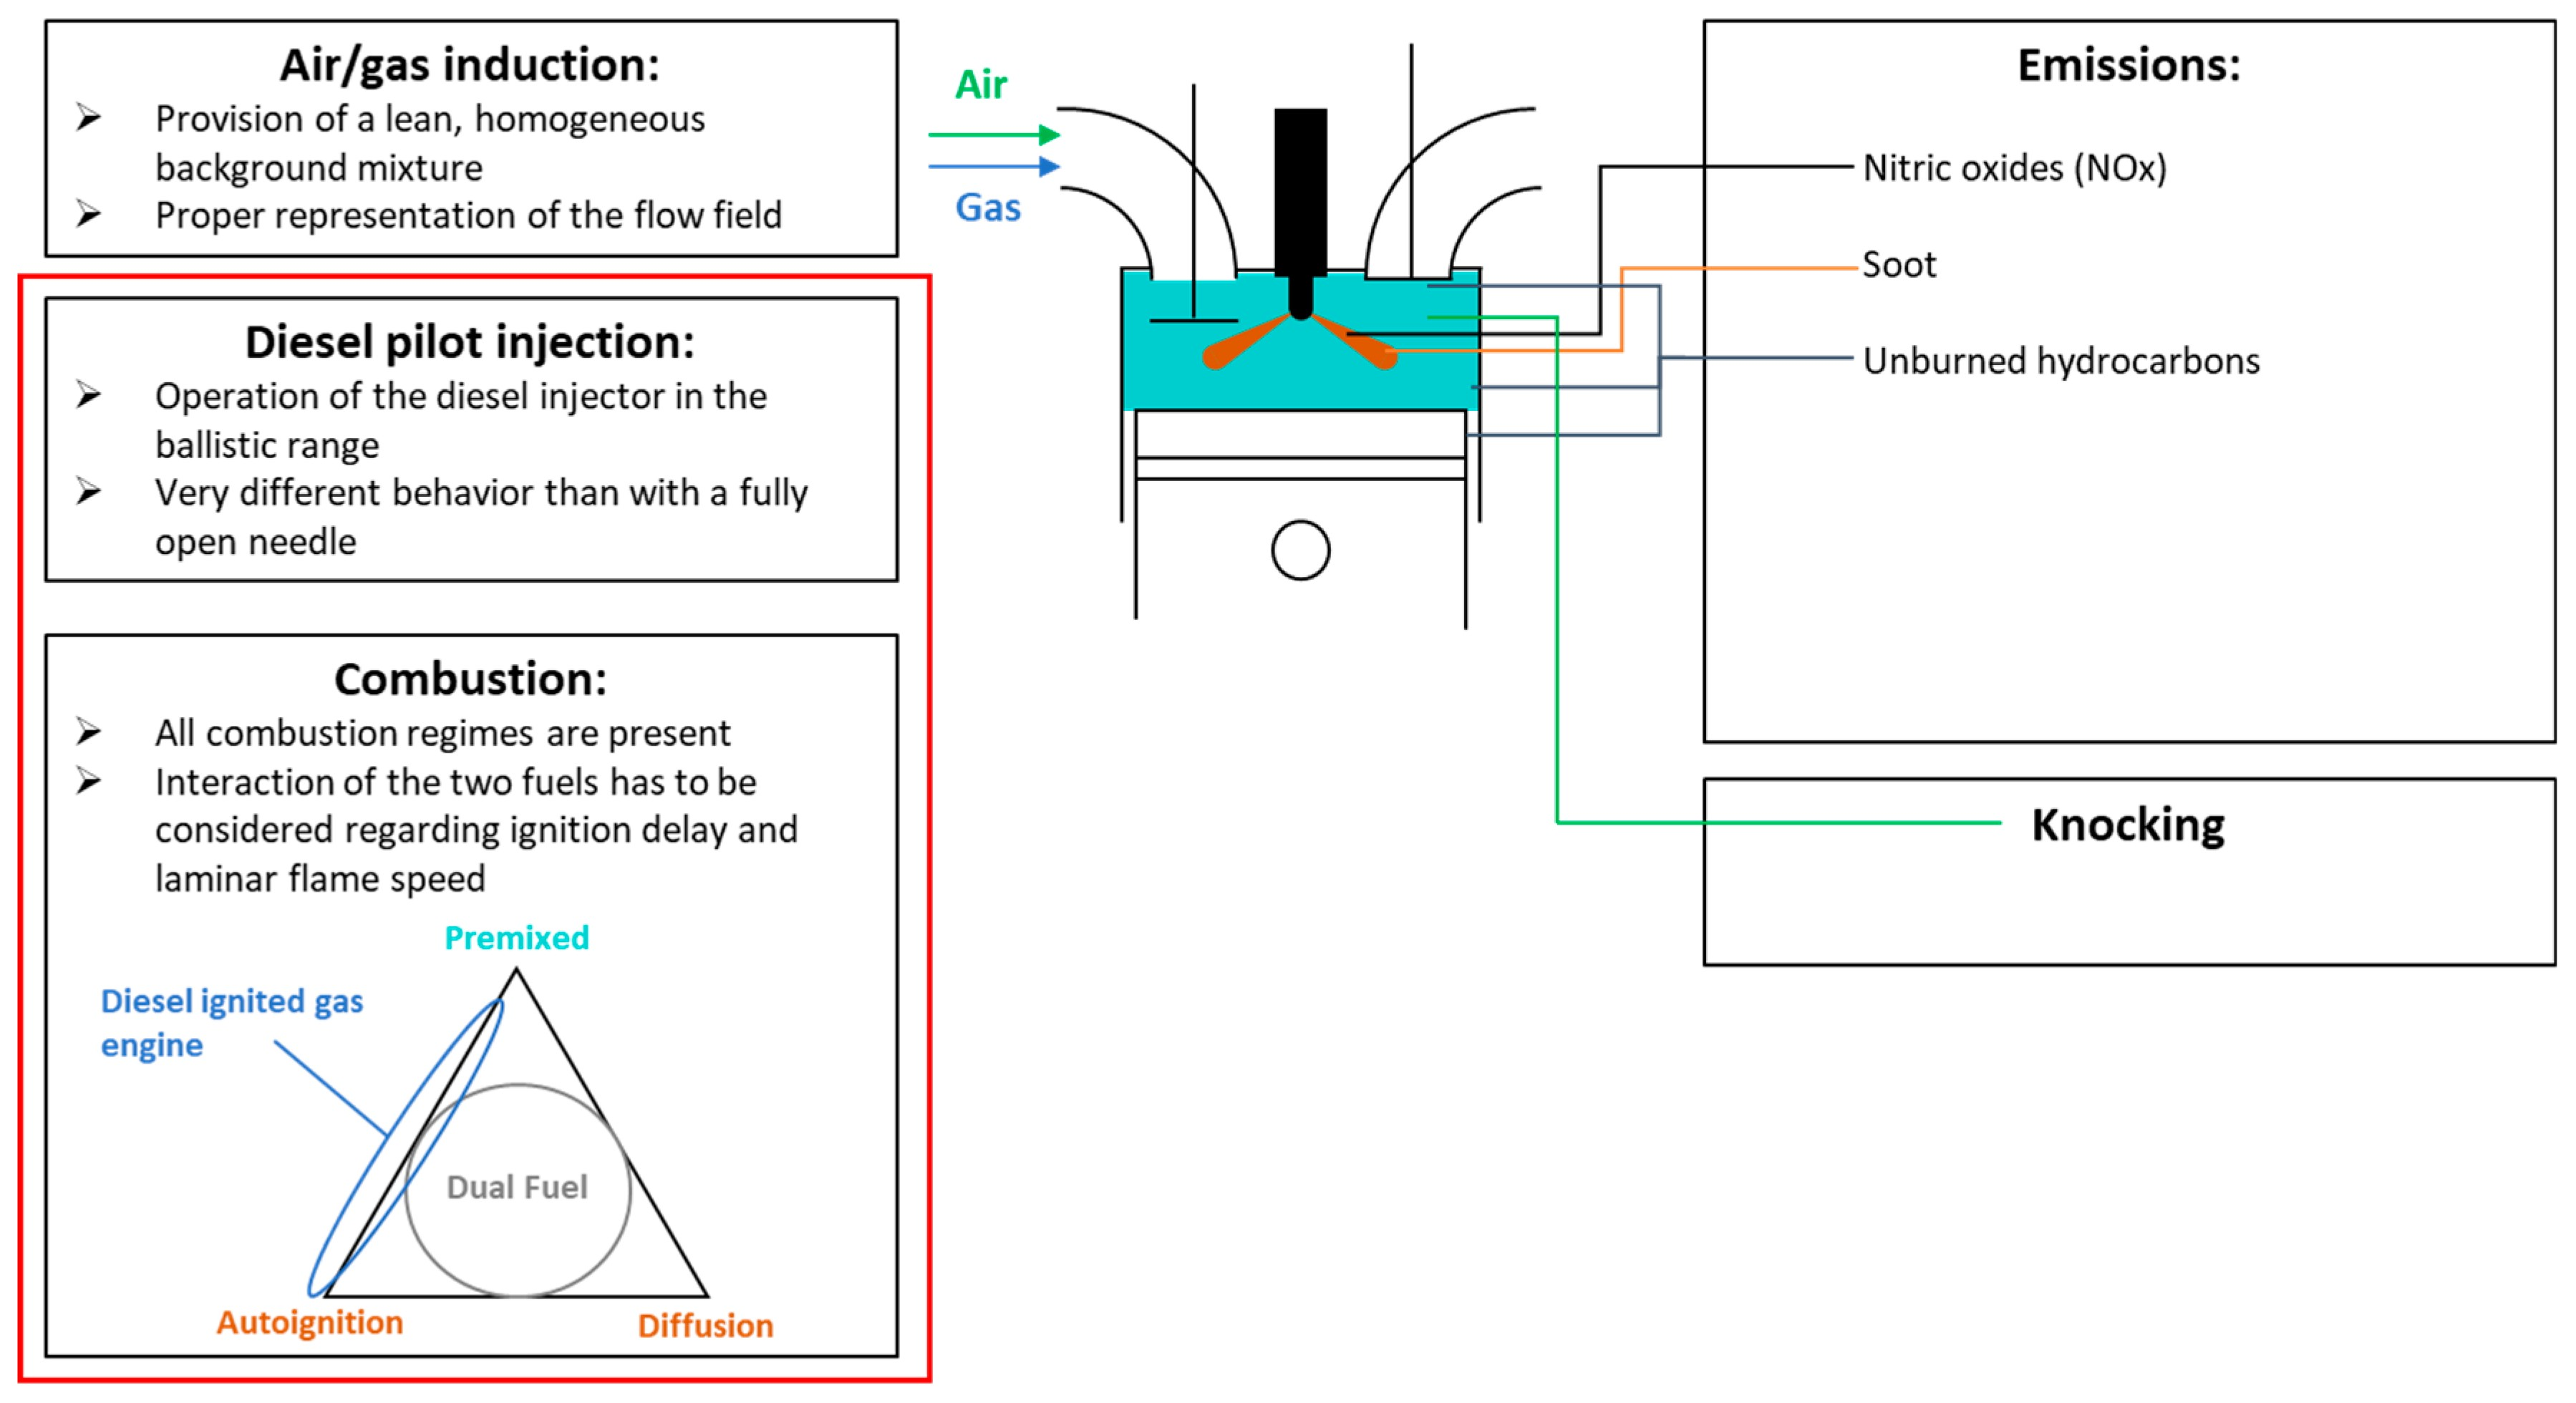 Port Timing Diagram Of Diesel Engine Energies Free Full Text Of Port Timing Diagram Of Diesel Engine